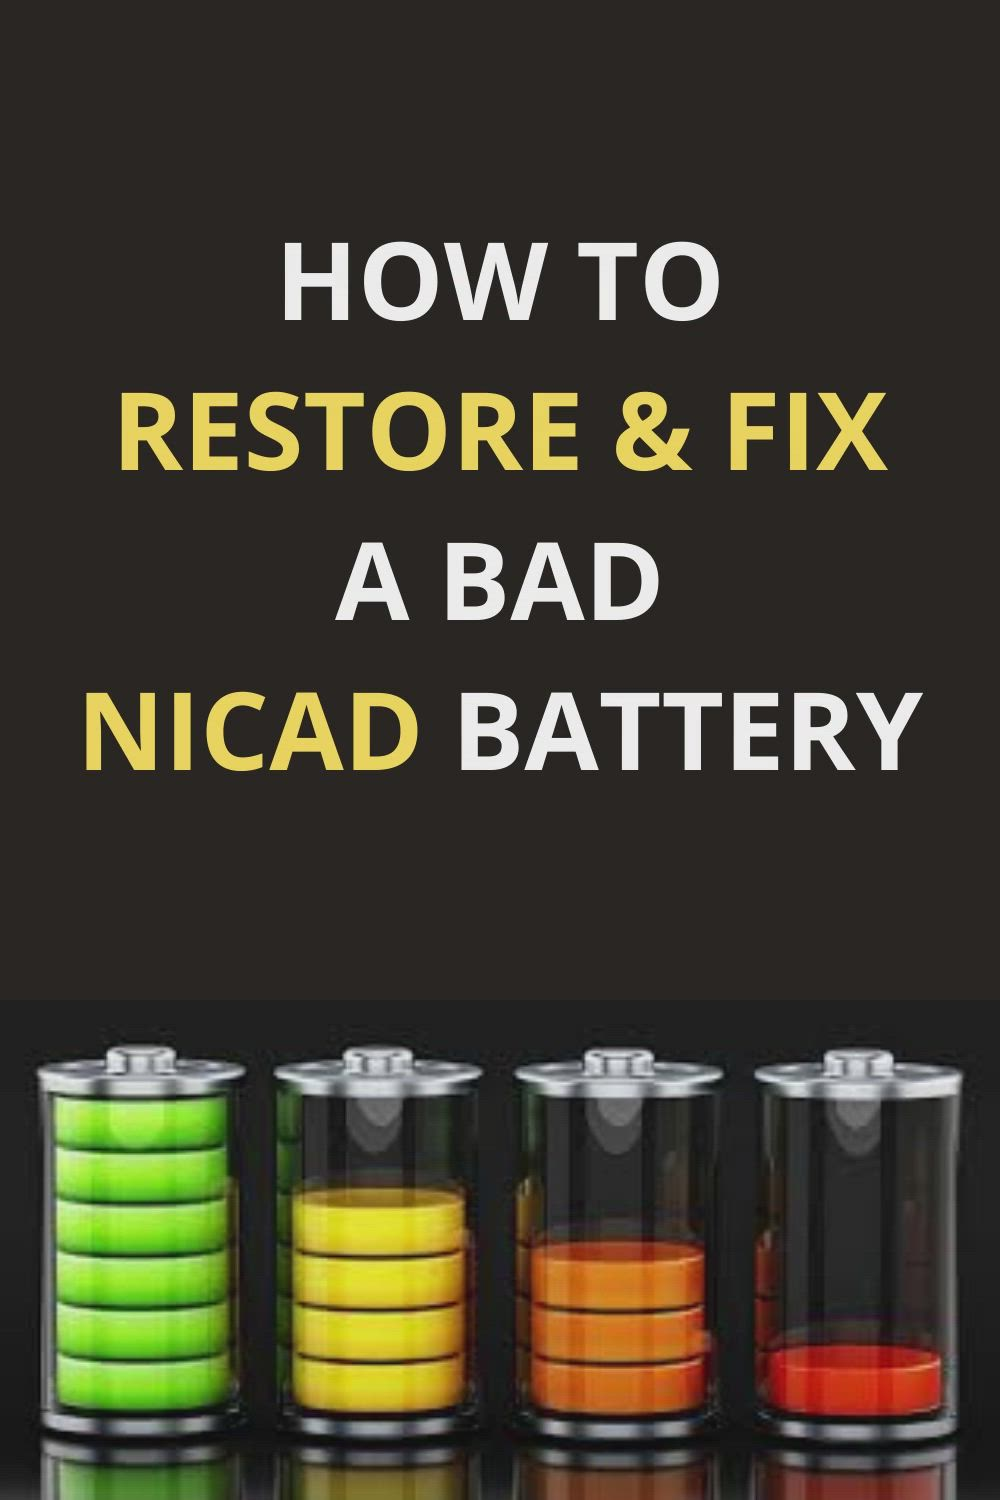 How To Restore Fix A Bad Nicad Battery Video In 2021 Batteries Diy Car Battery Hacks Battery Repair